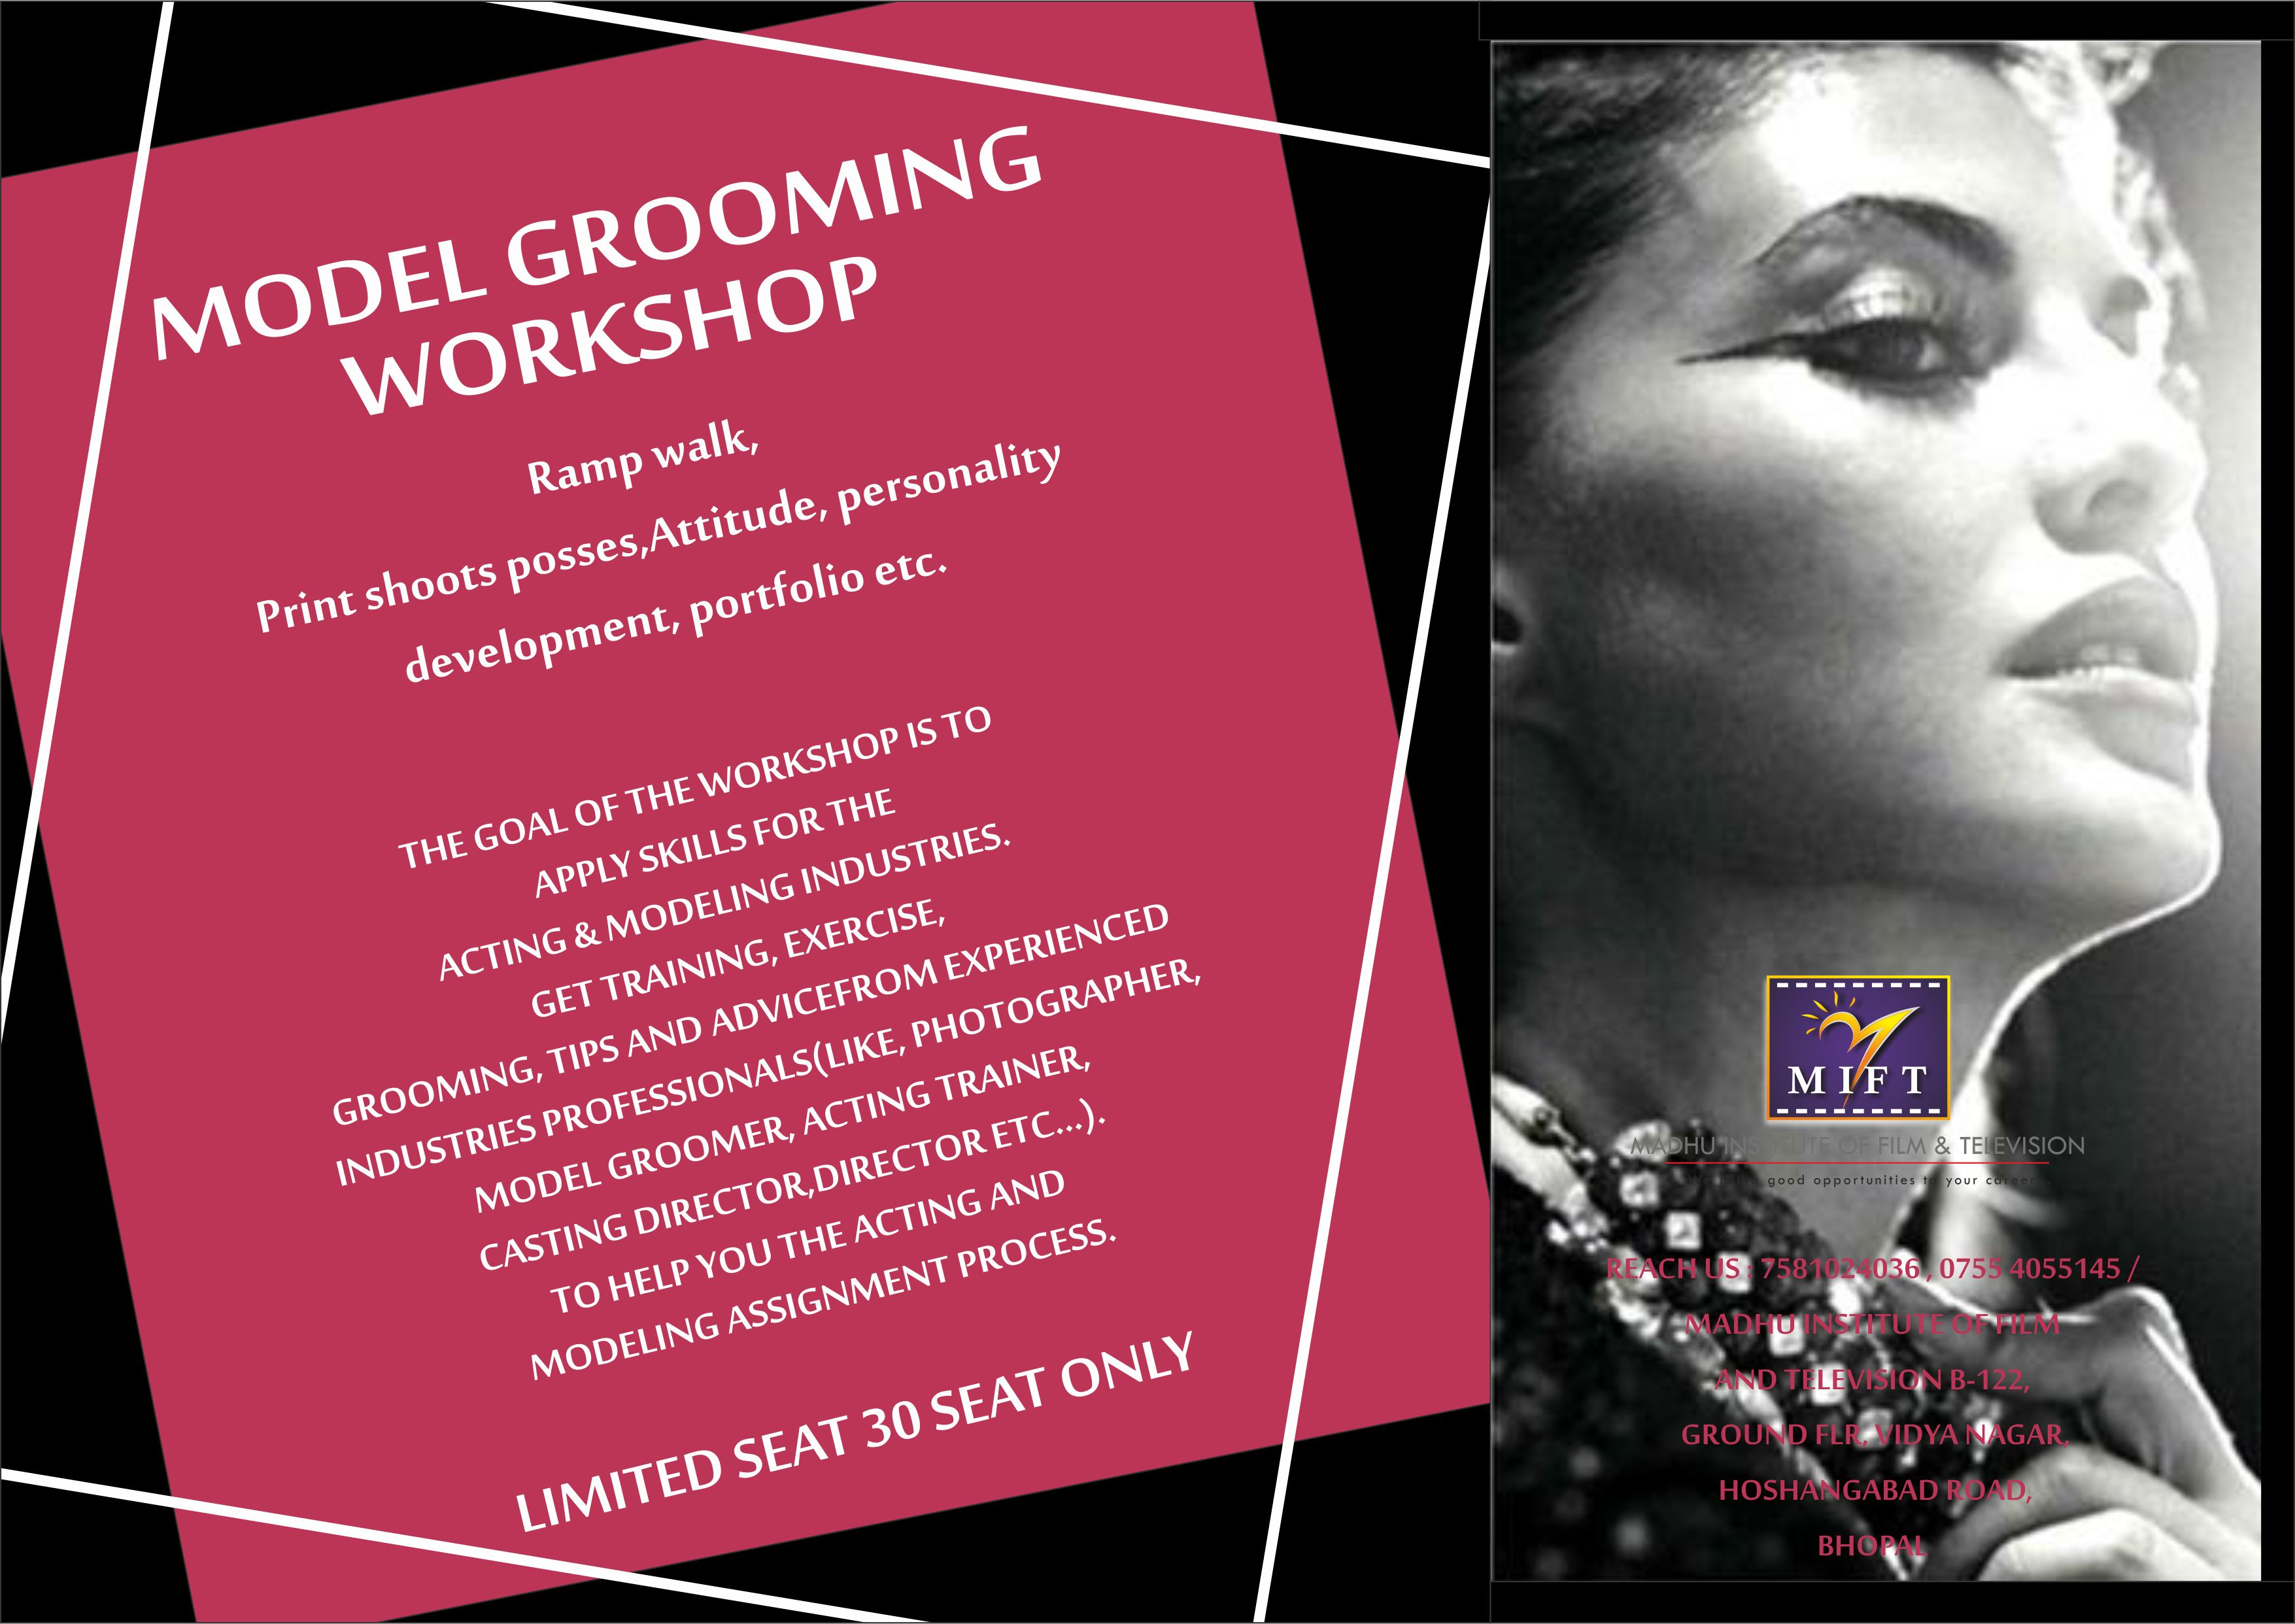 Registration open Model Grooming hurry up guys